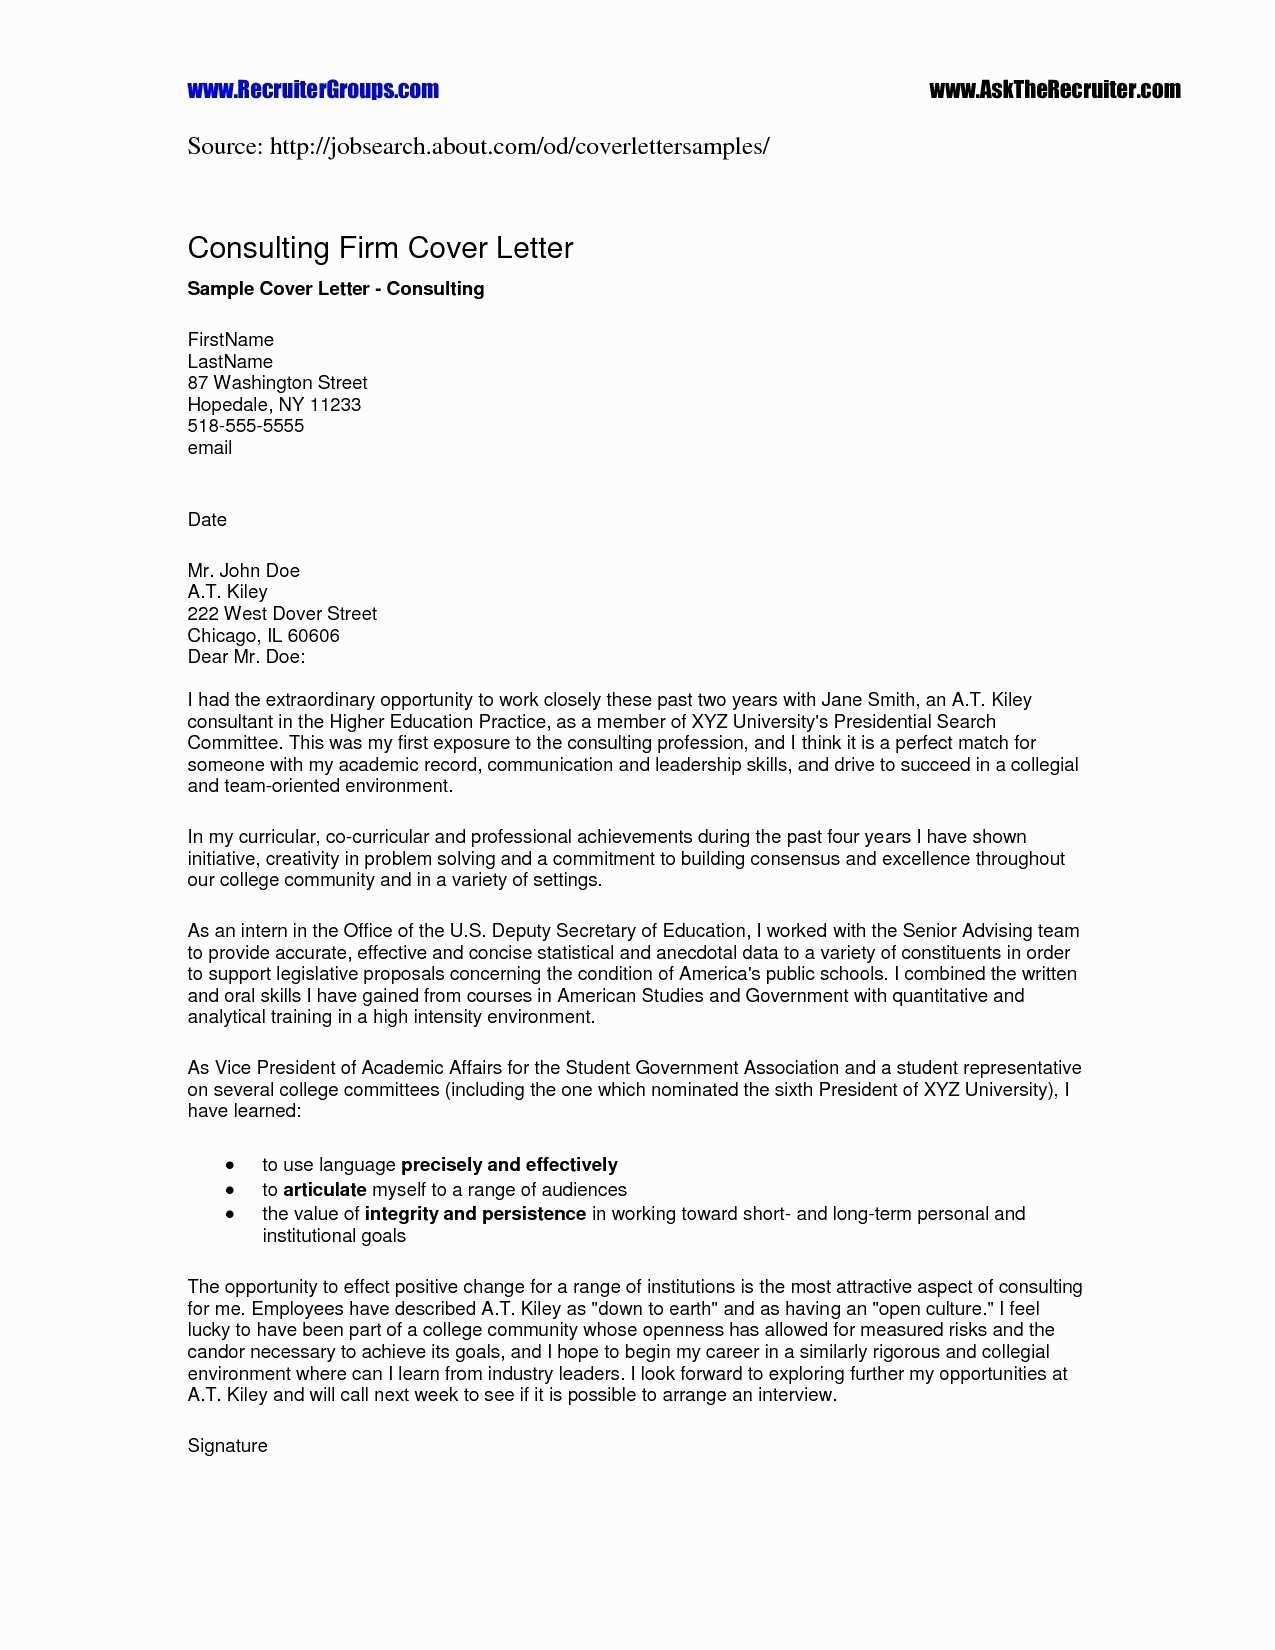 release of liability letter template new release liability form template